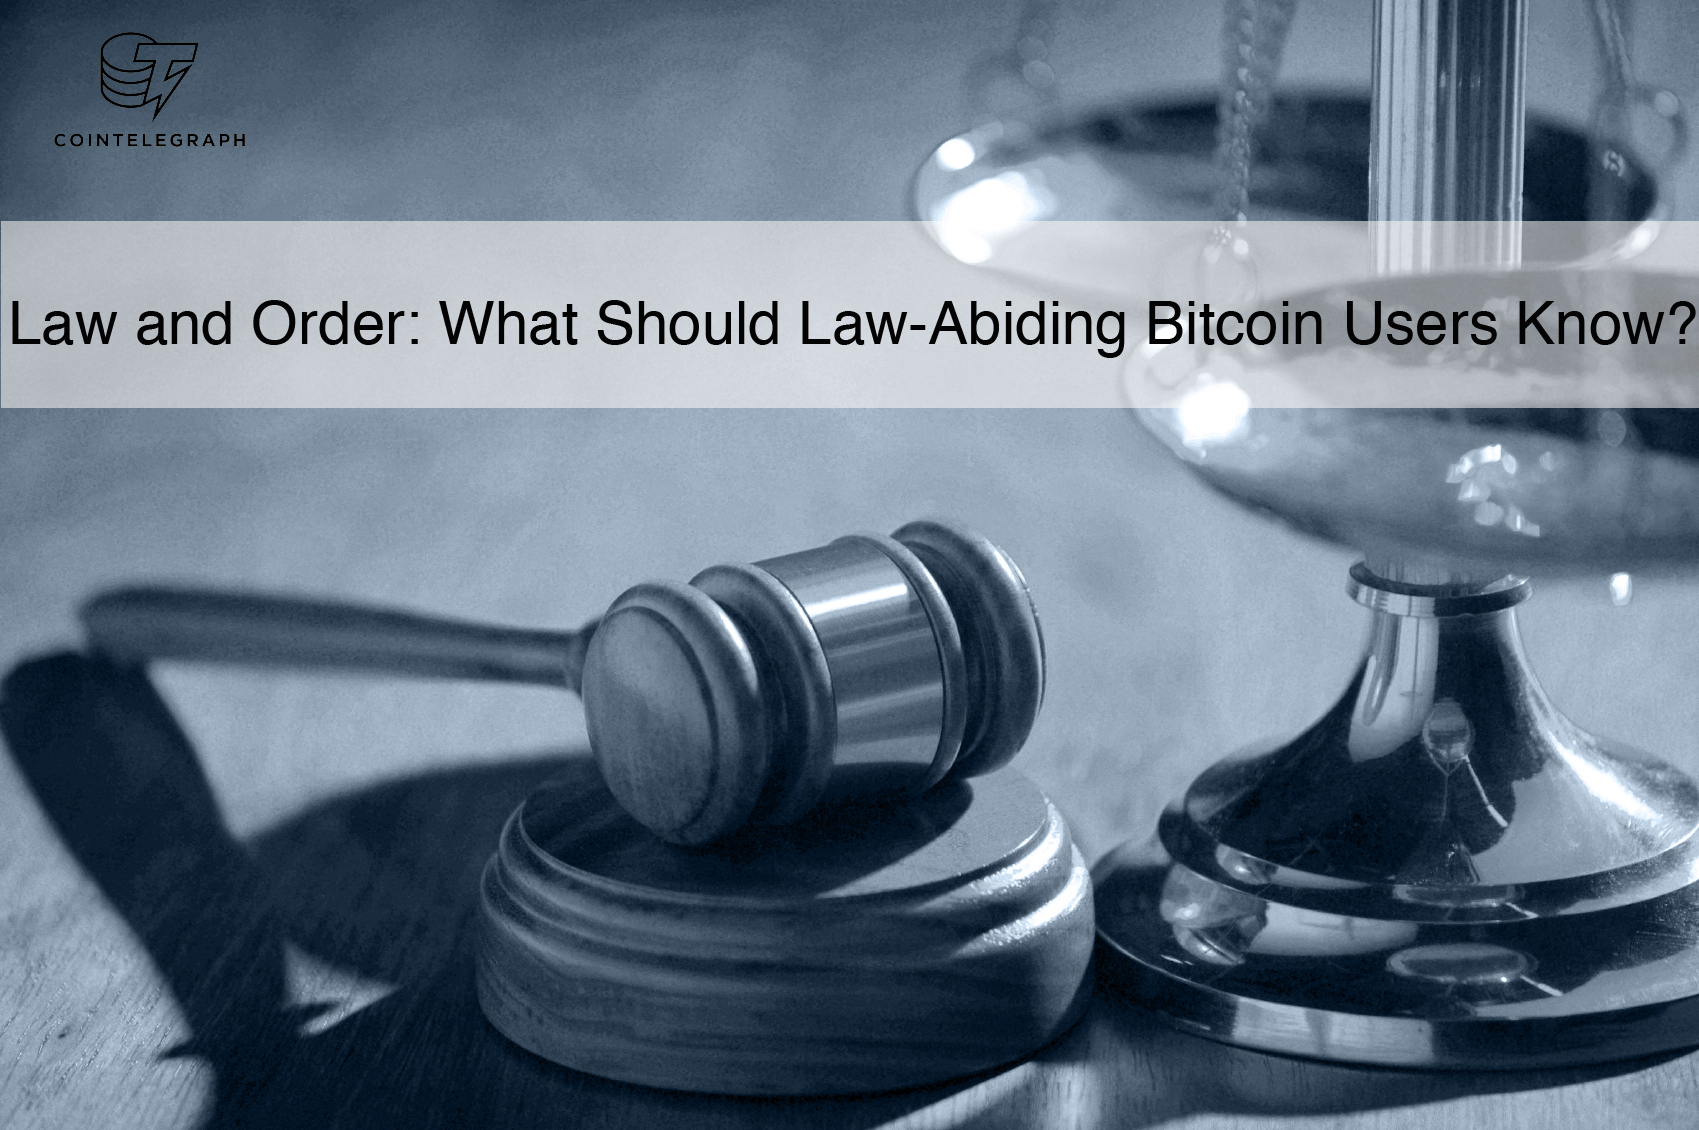 Law and Order: What Should Law-Abiding Bitcoin Users Know?